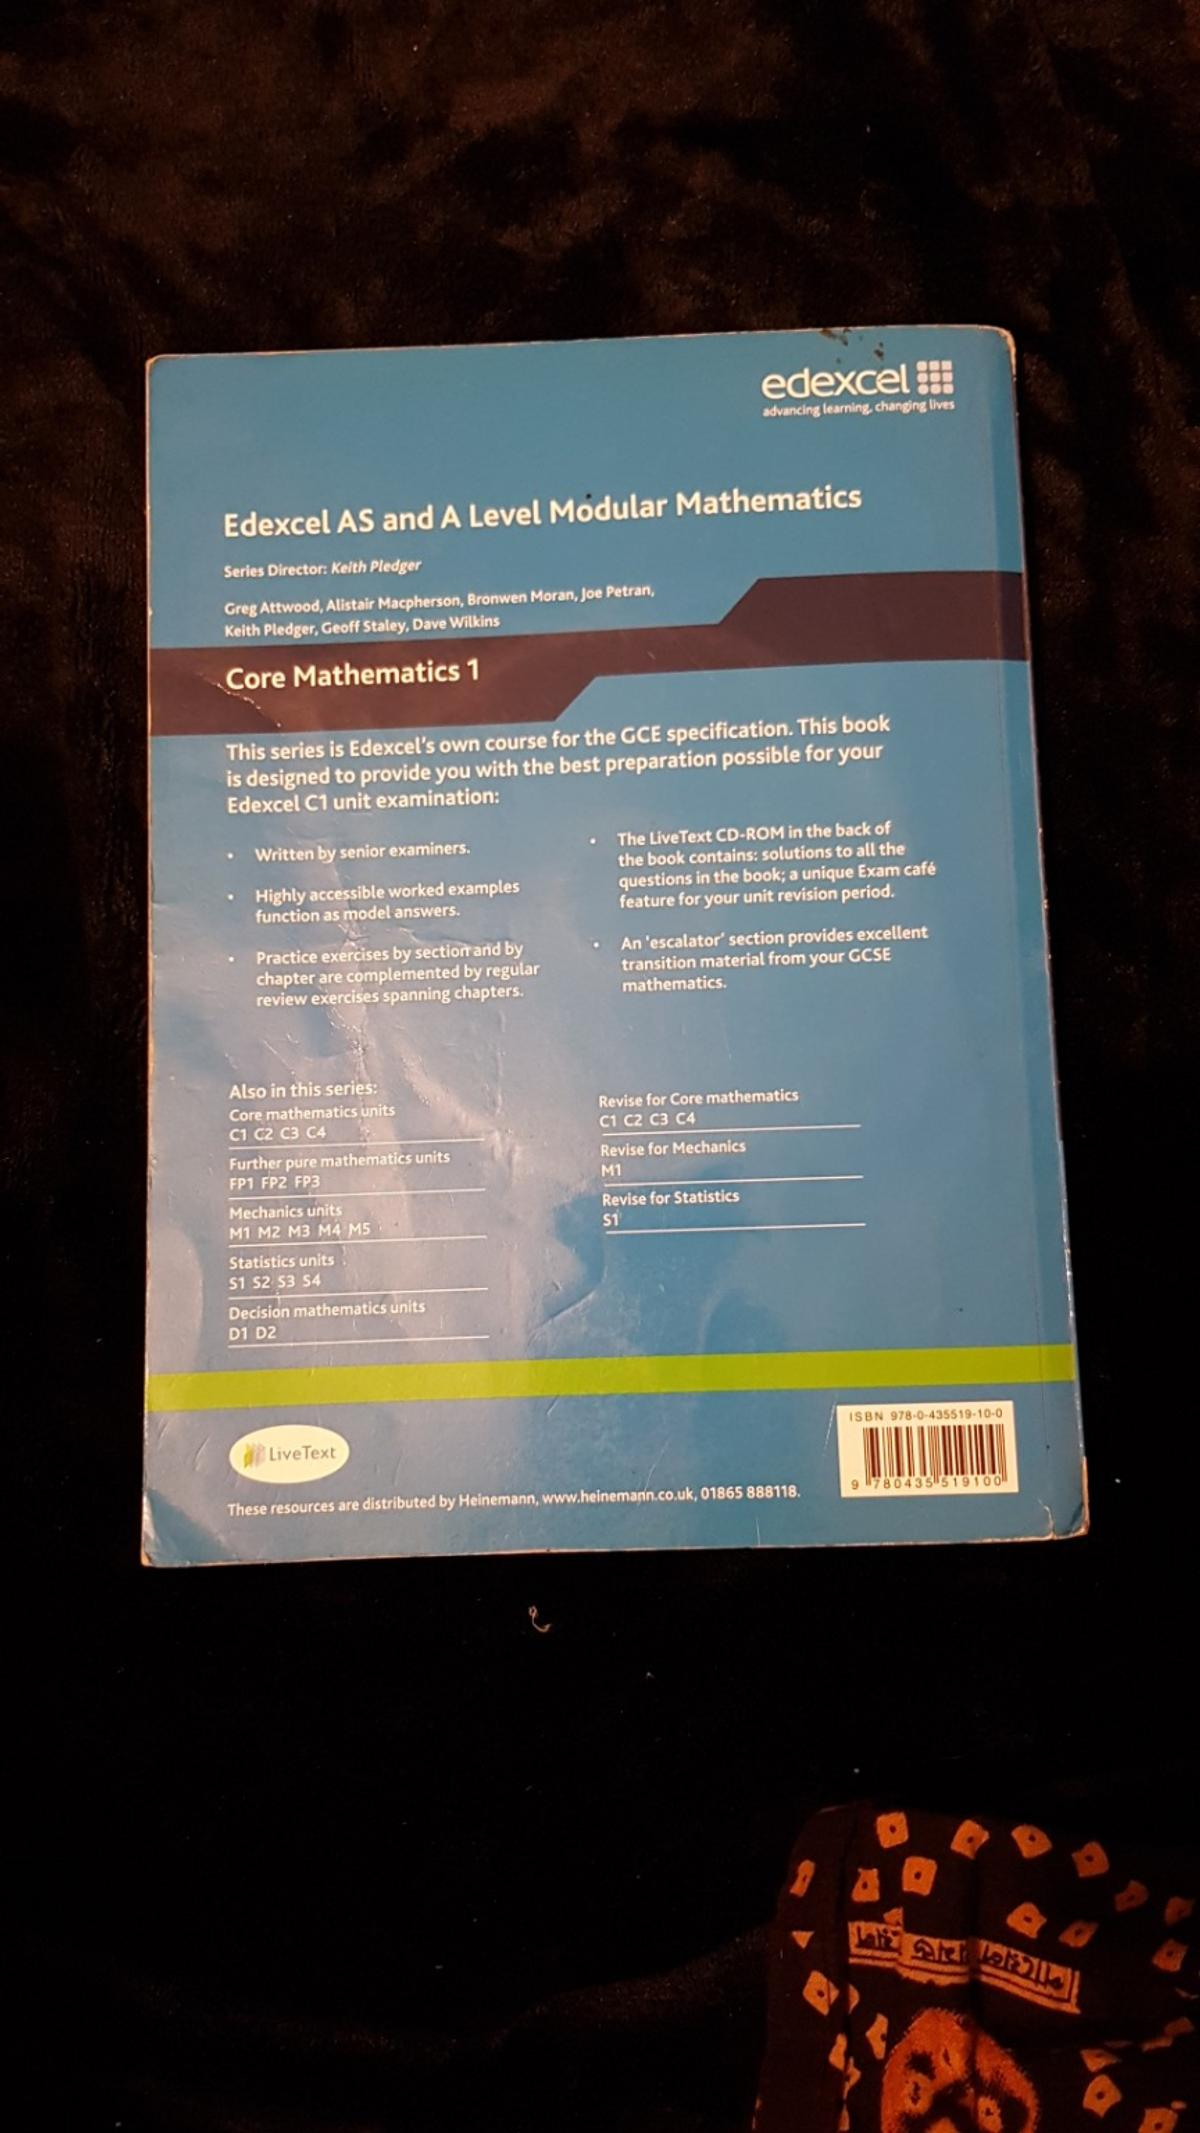 C1 Edexcel AS and A level in E7 Newham for £10 00 for sale